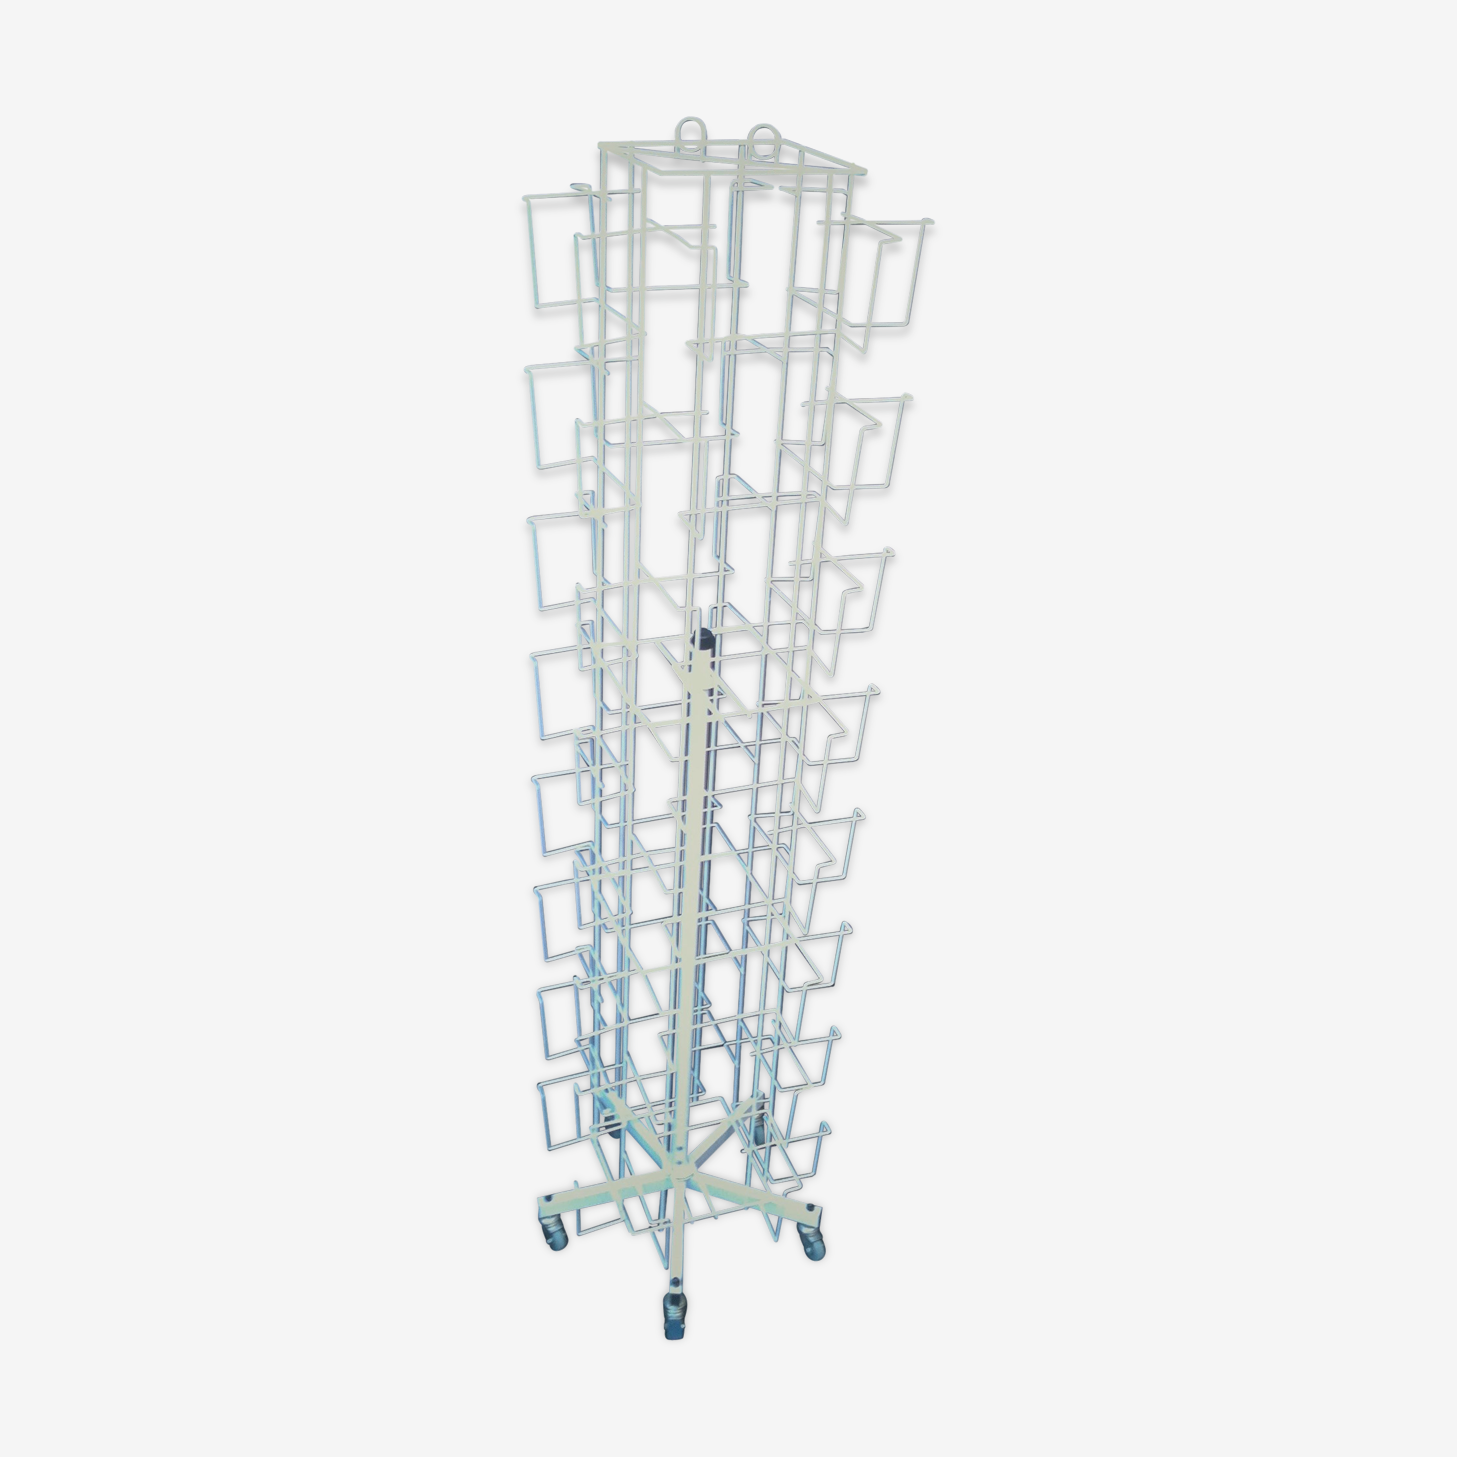 Turnstile to review